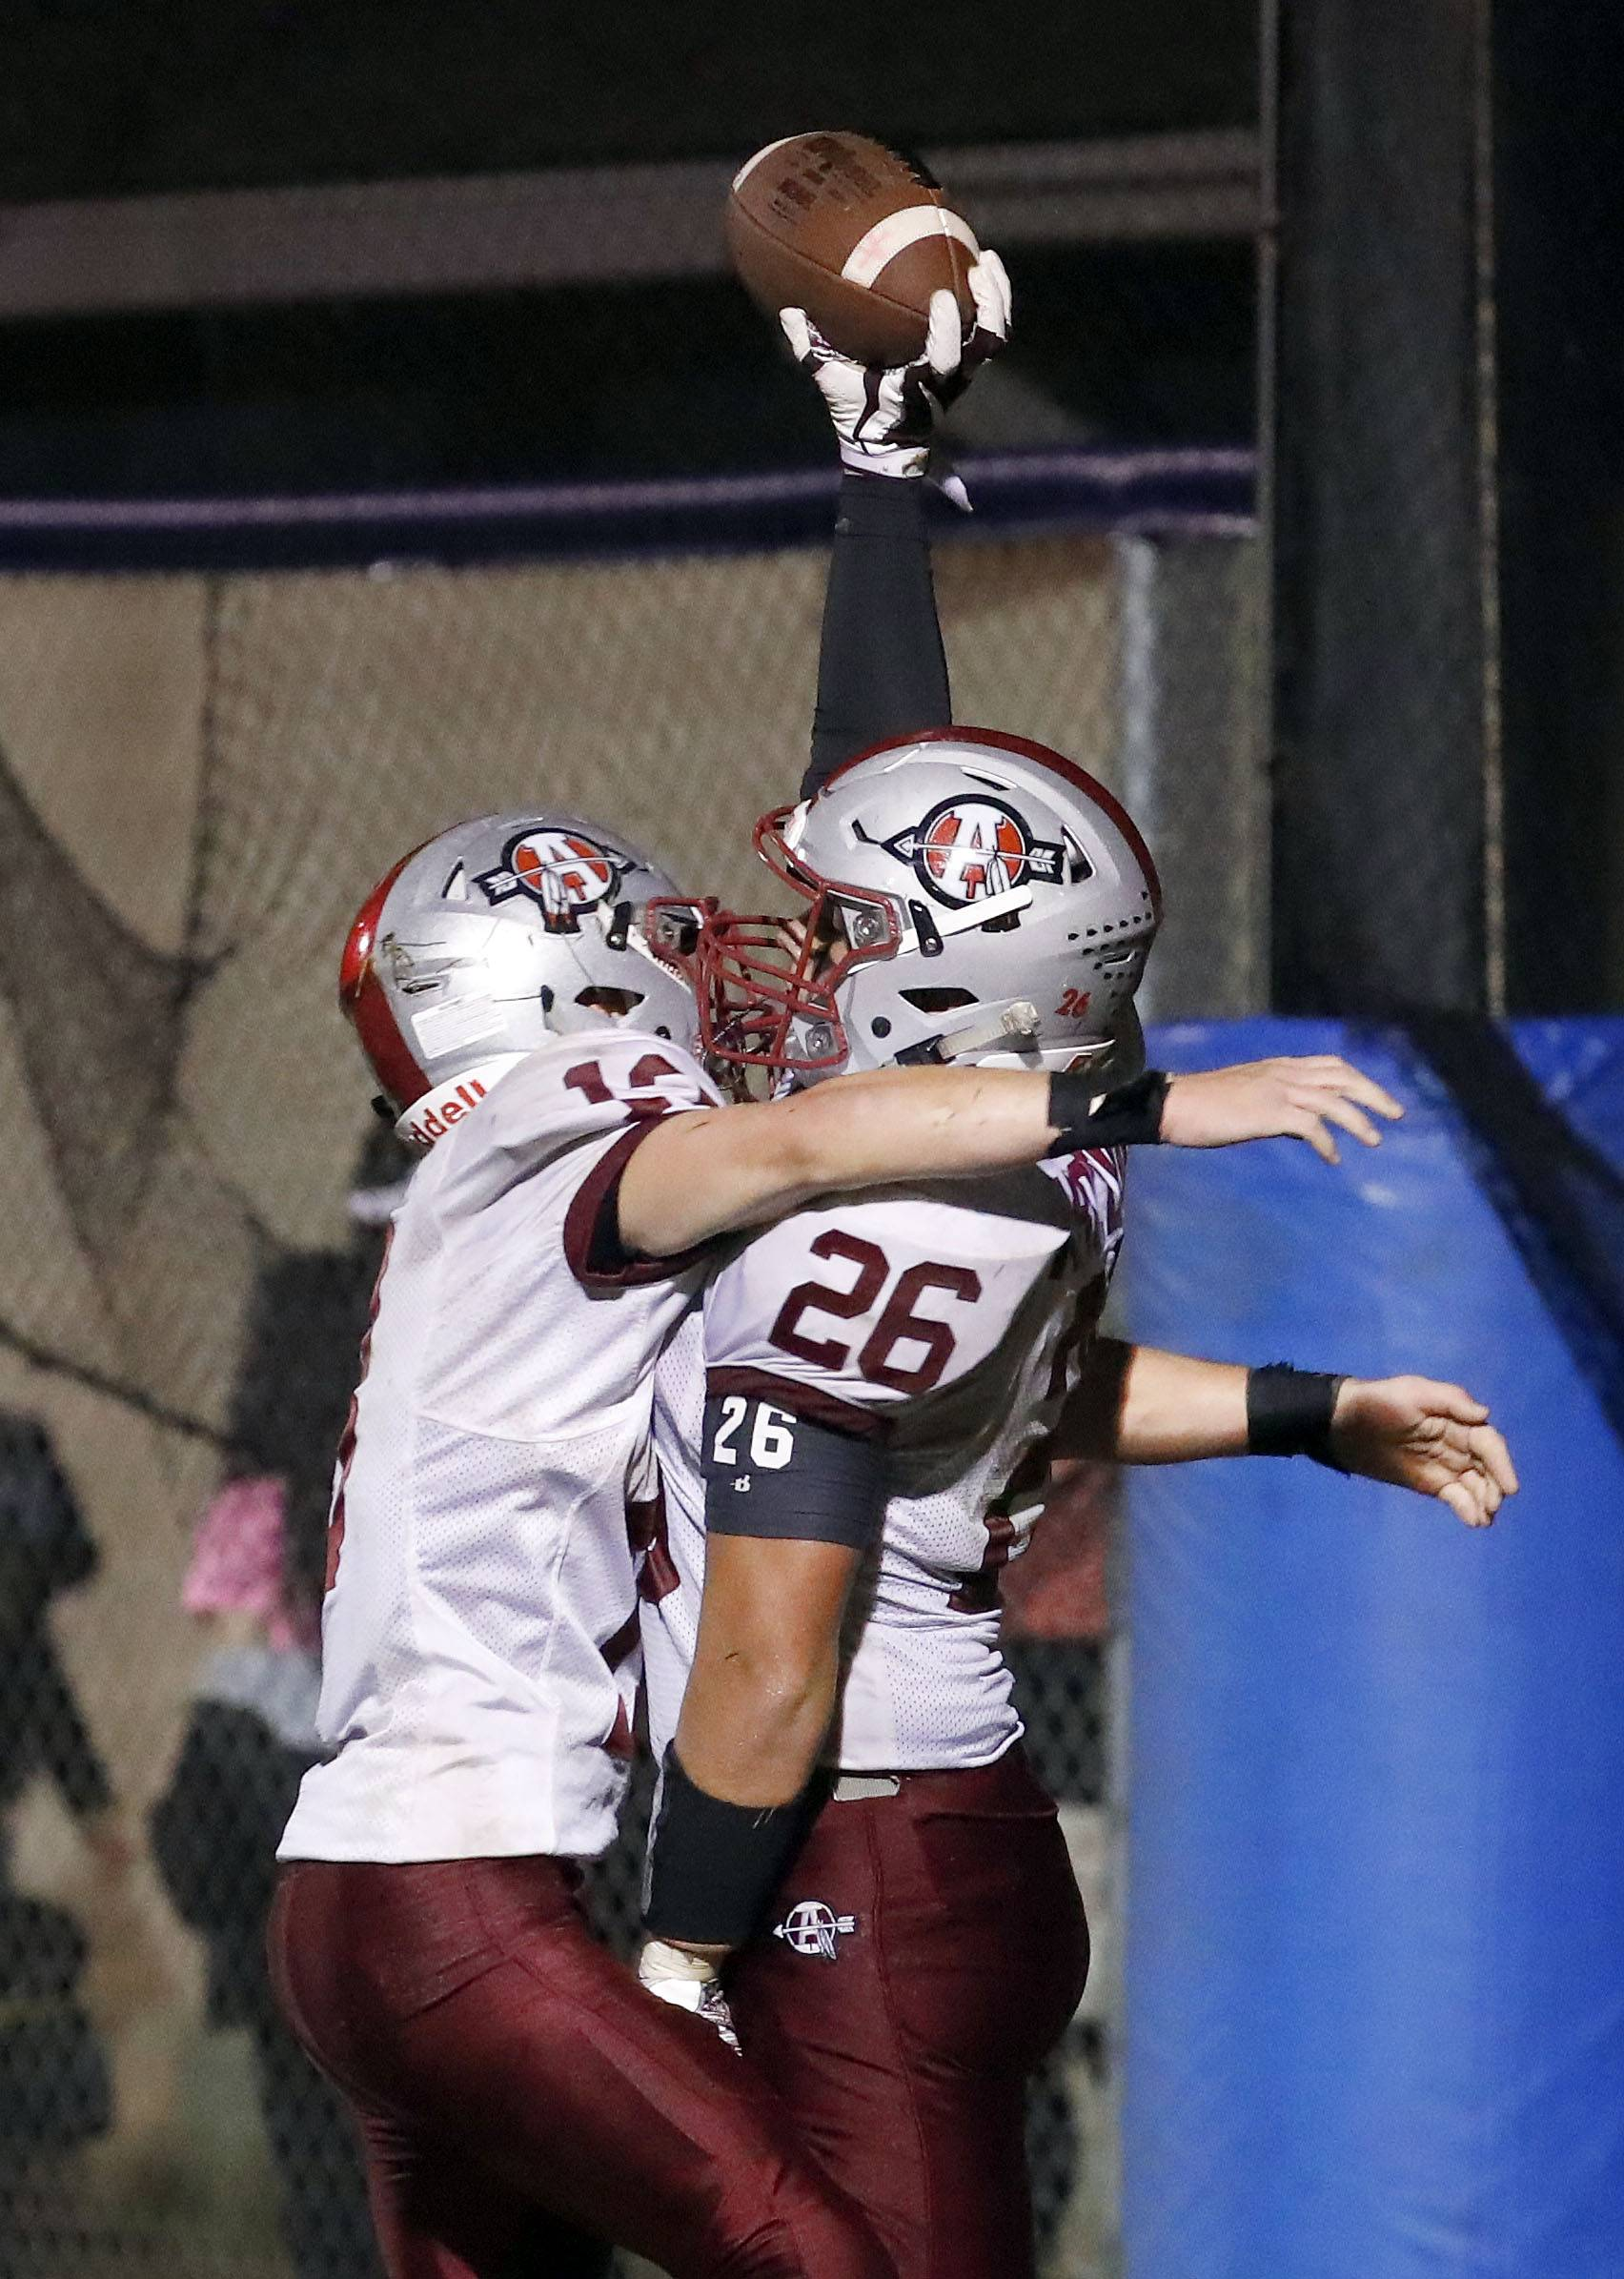 Antioch's Hunter Price celebrates with teammate Joseph Karolewicz (26) after a TD against Lakes Friday night in Lake Villa.